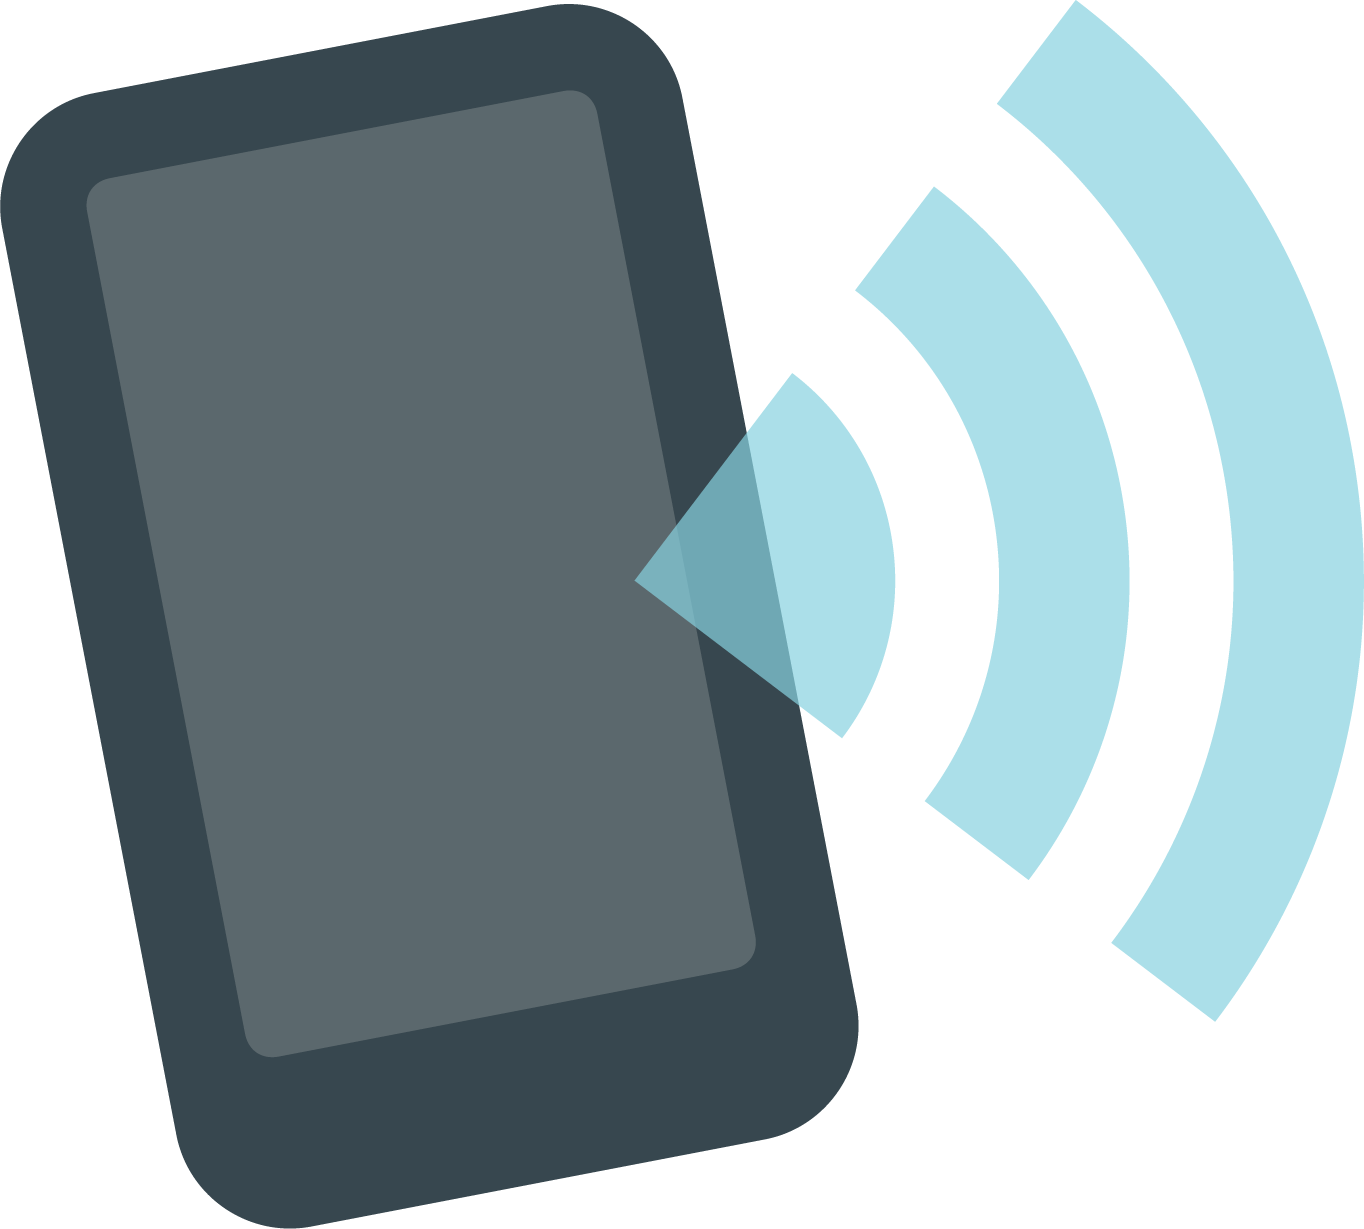 Icon showing phone data